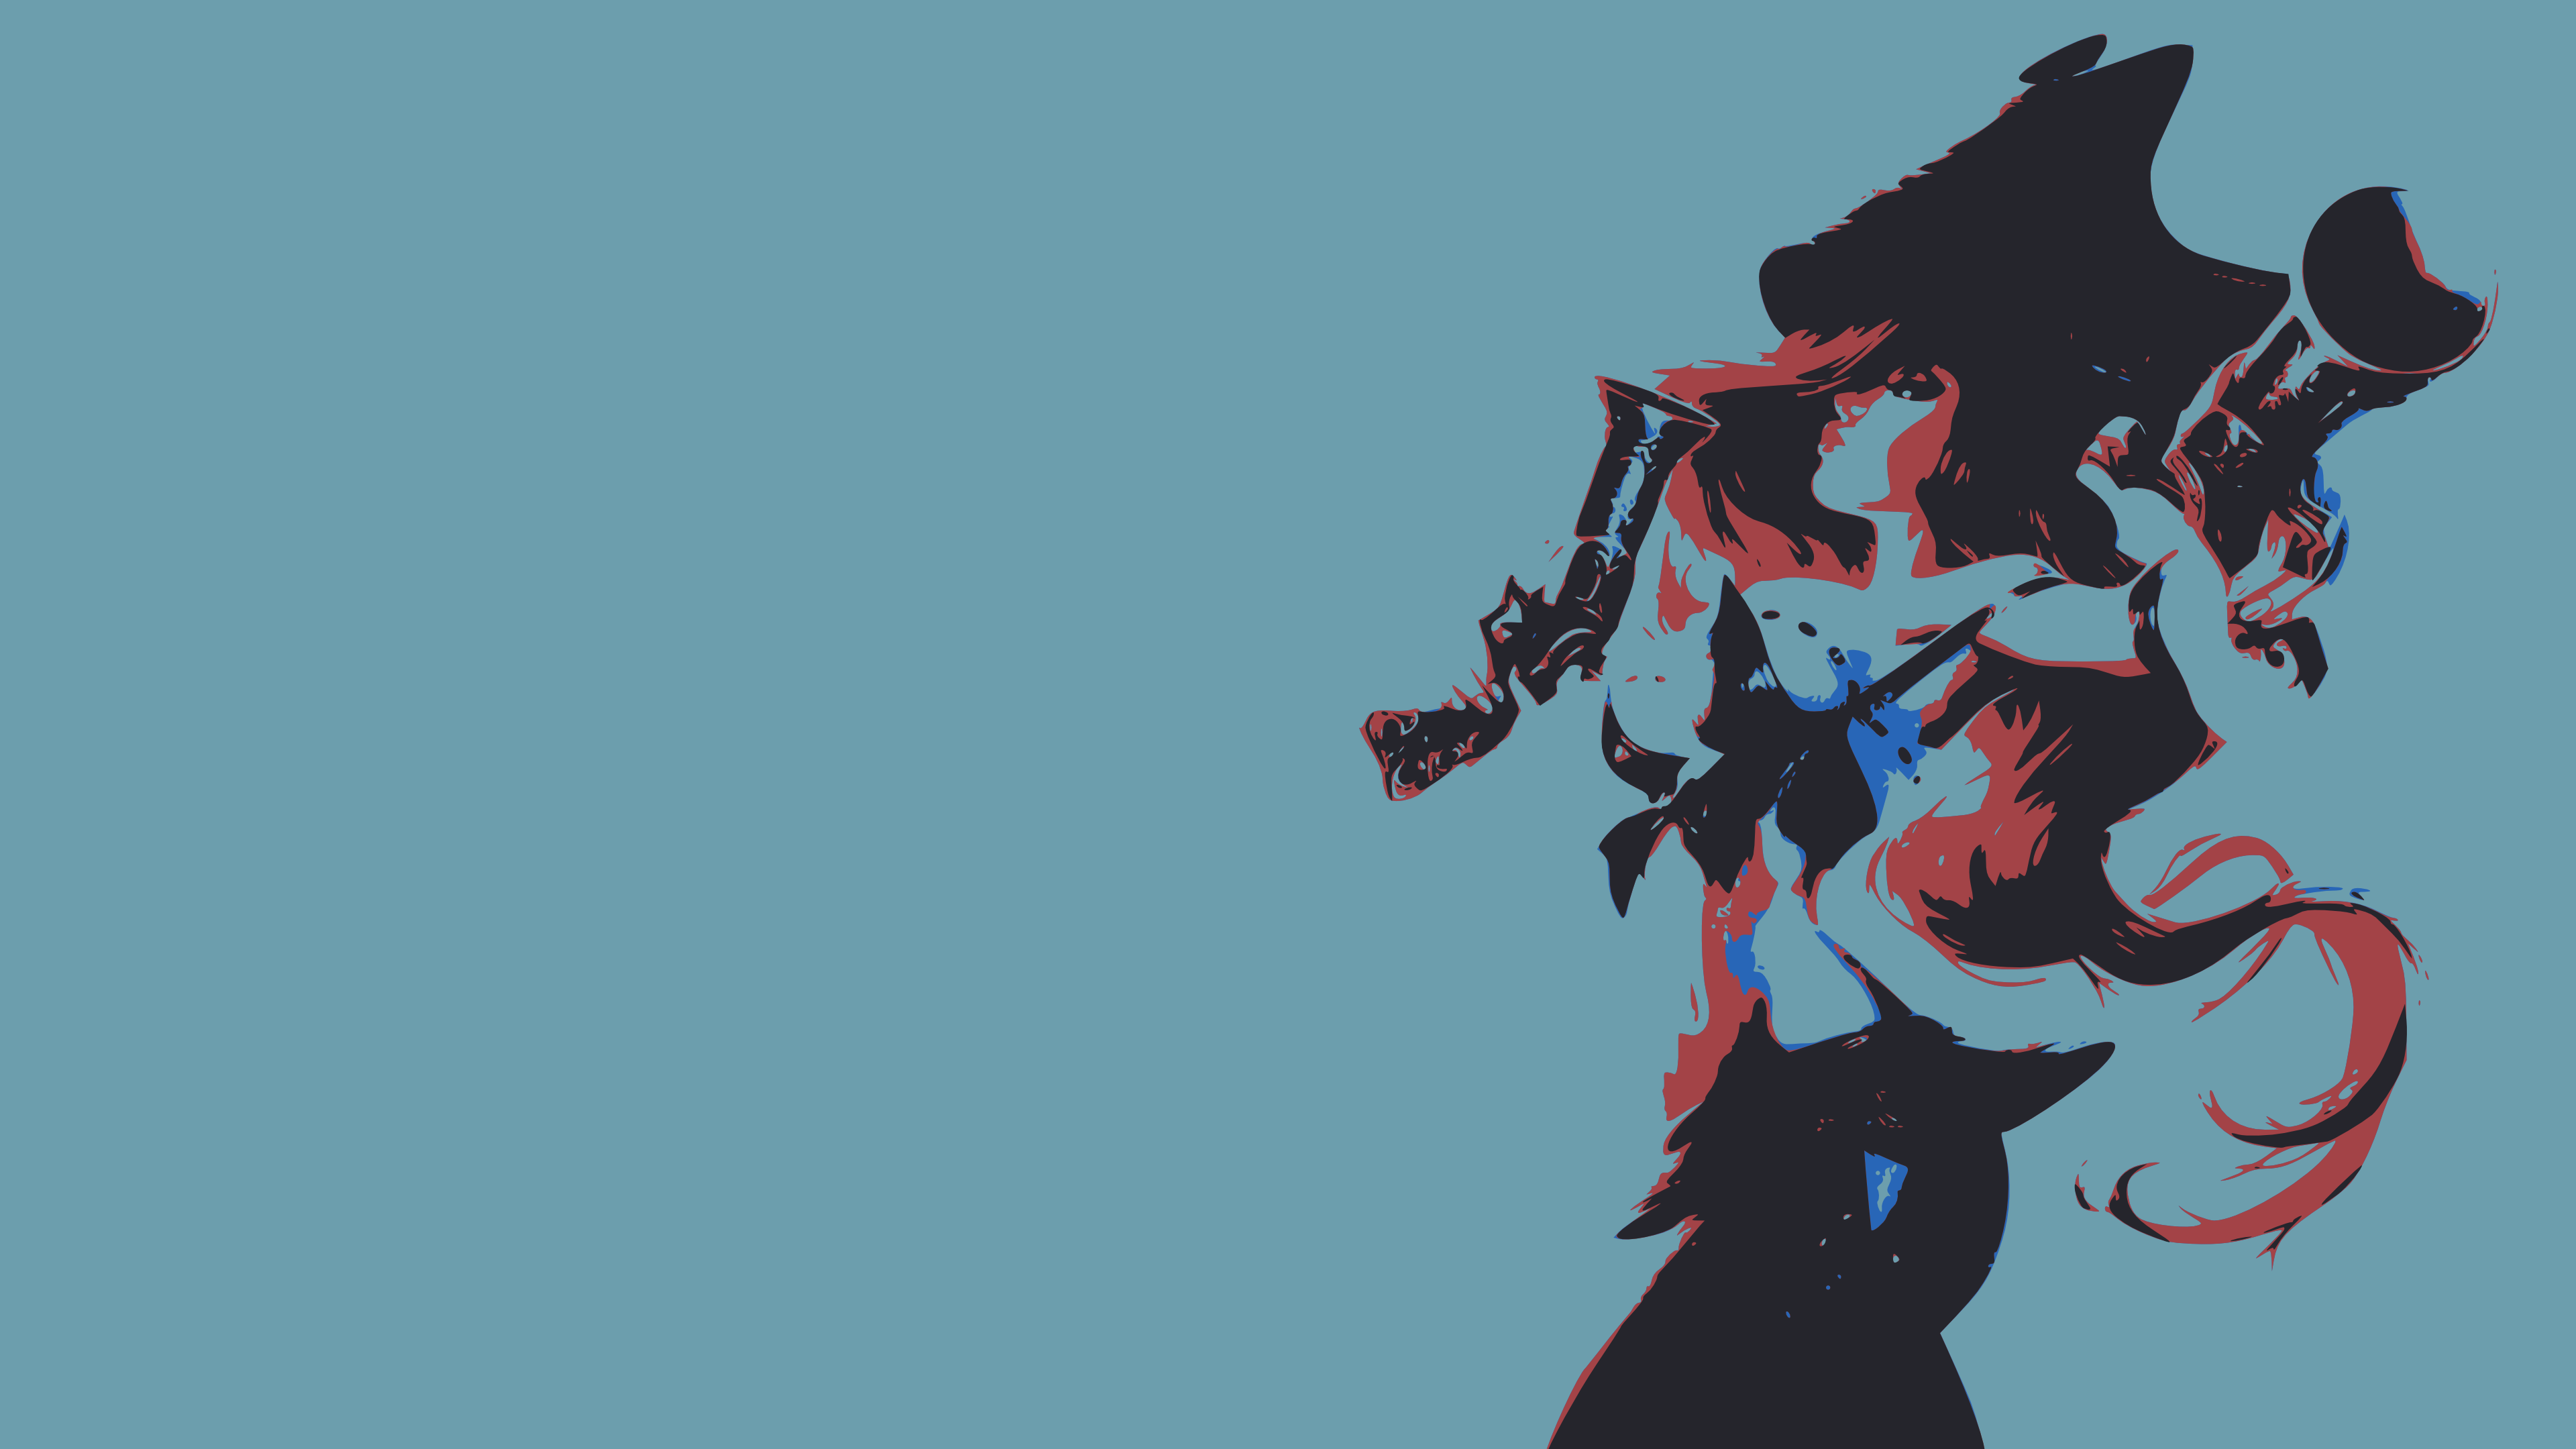 Miss Fortune minimalistic wallpaper by bohitargep Miss Fortune minimalistic  wallpaper by bohitargep